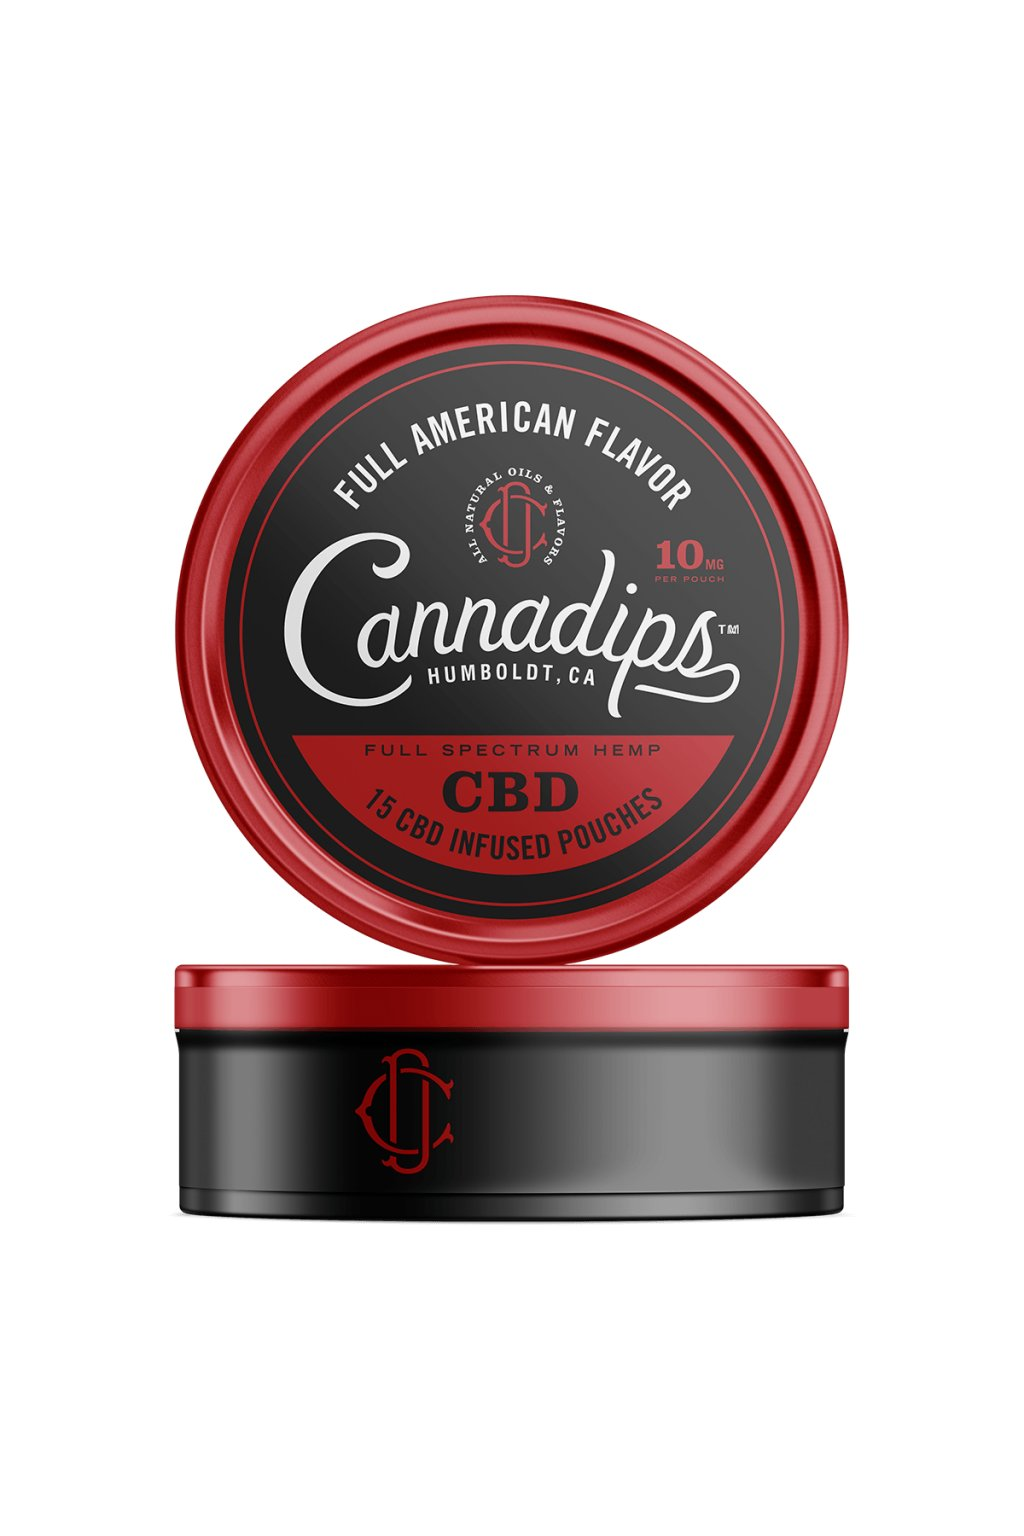 Cannadips American Tin